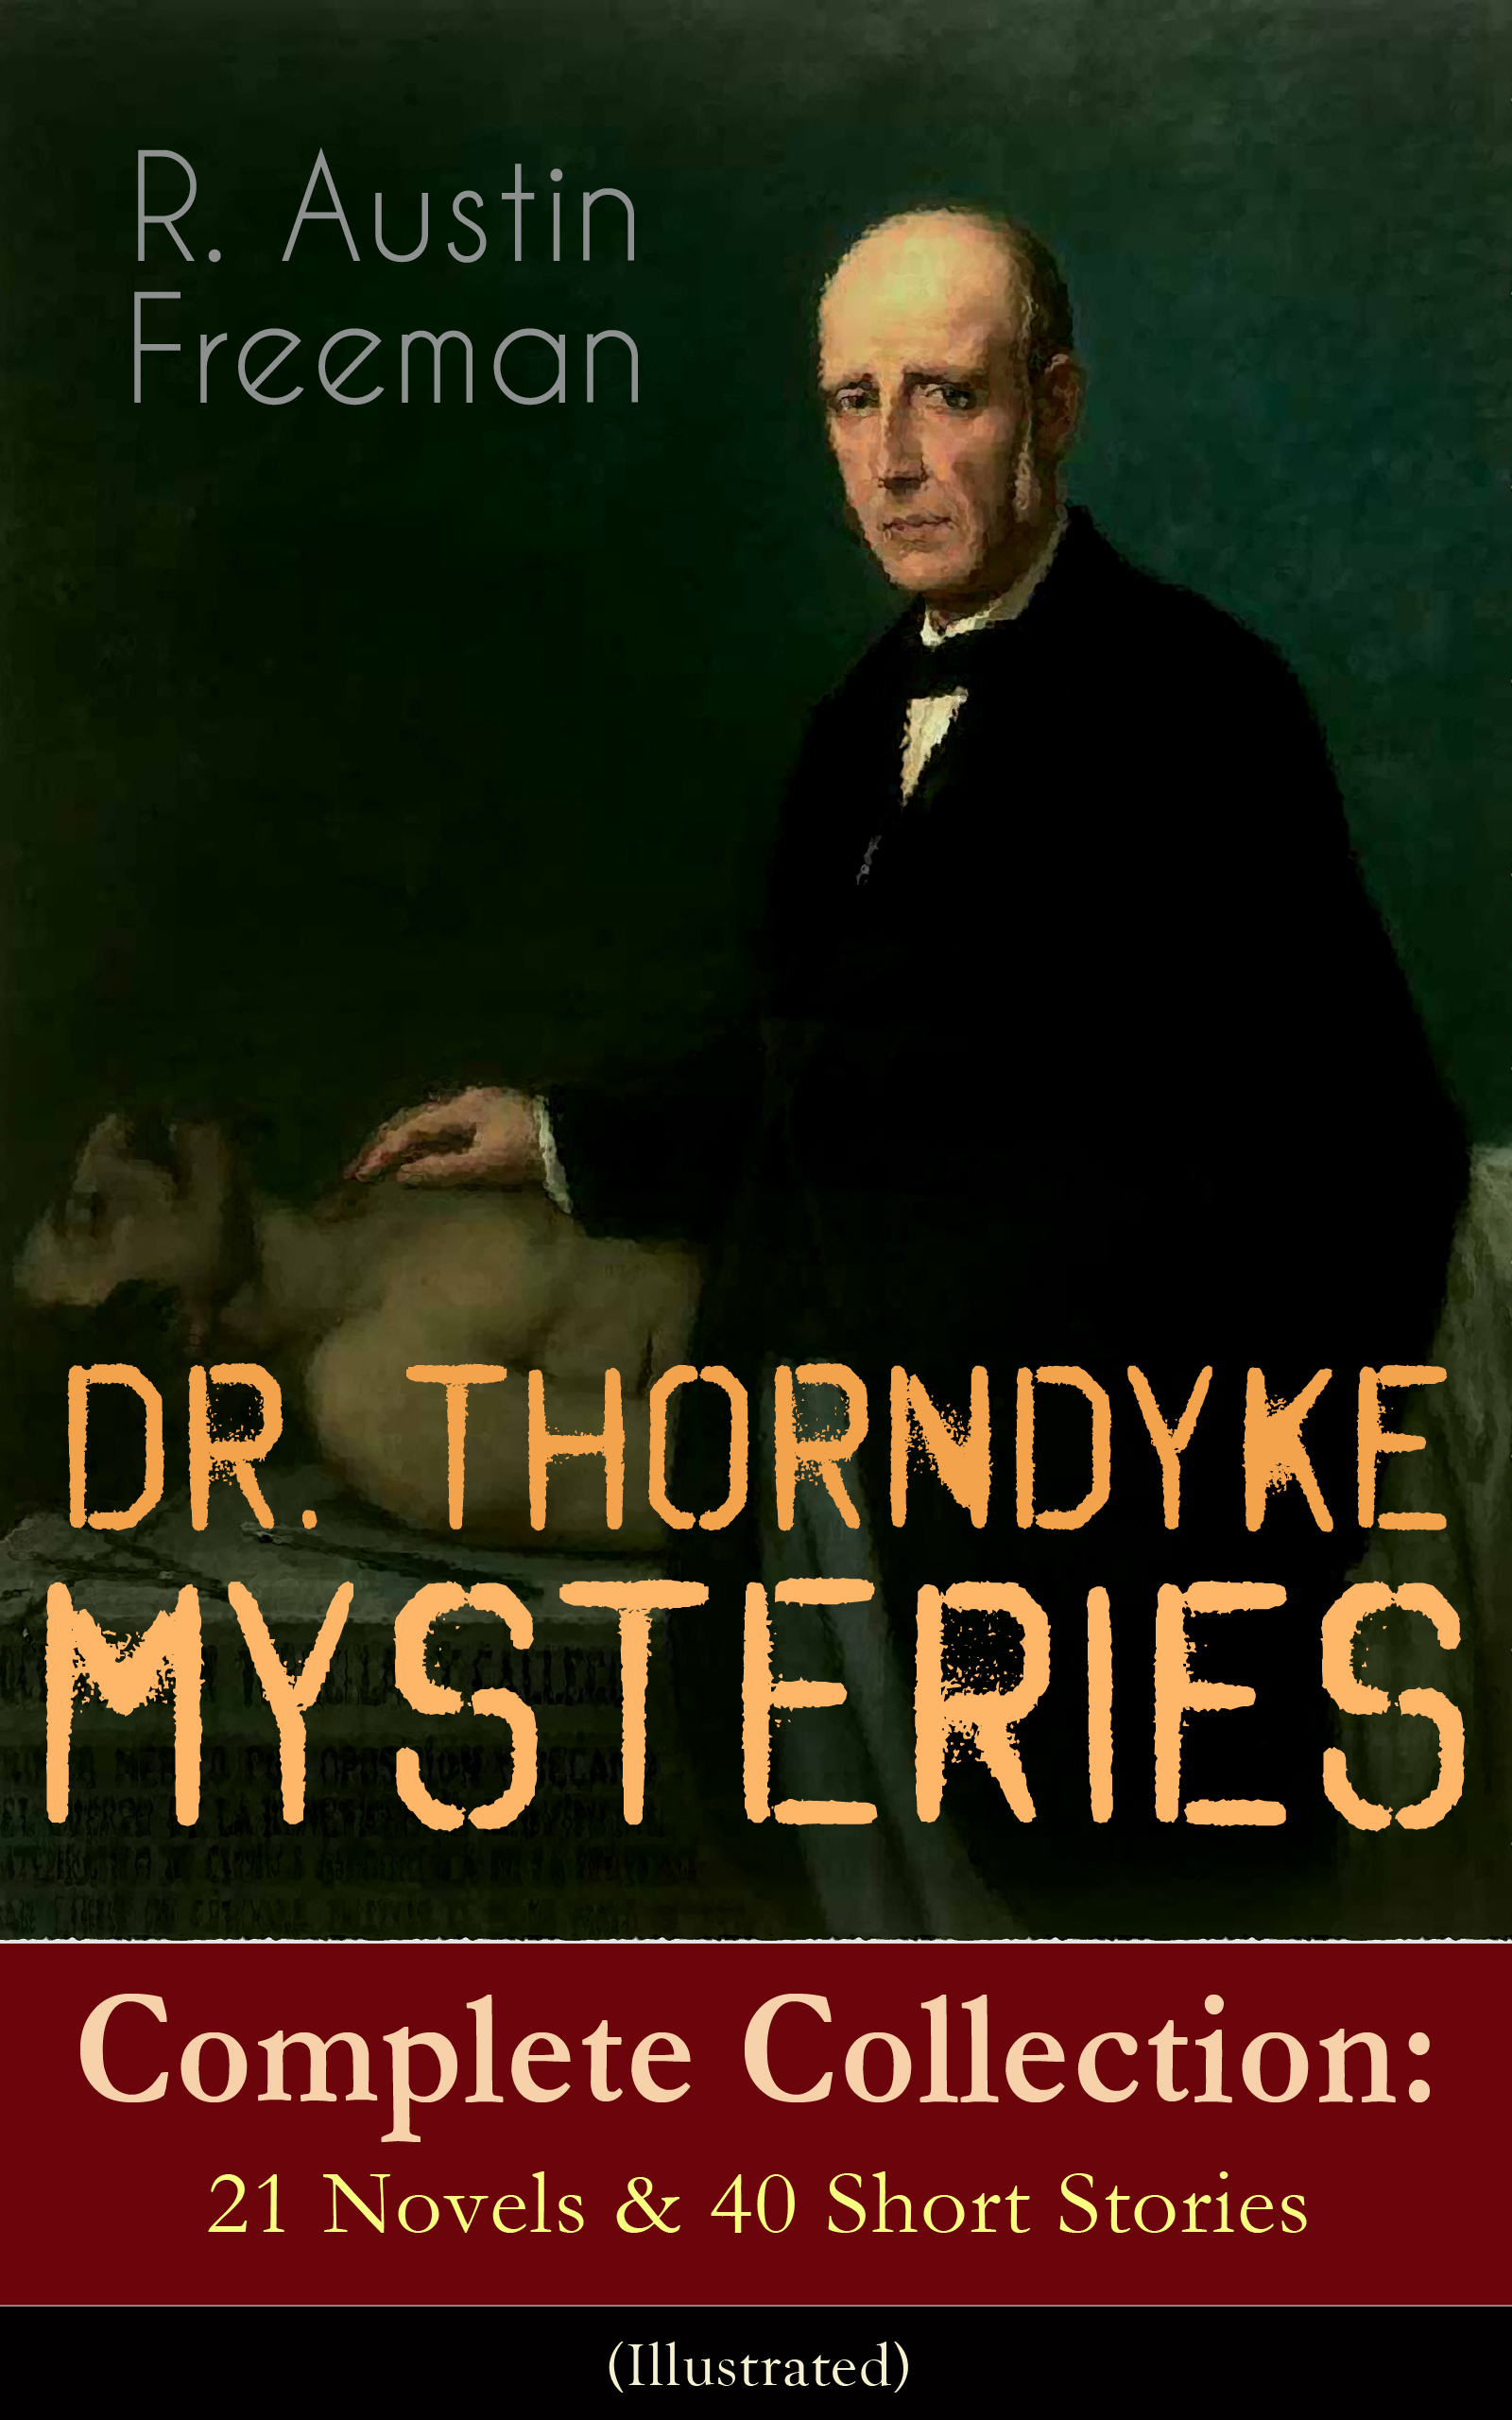 R. Austin Freeman DR. THORNDYKE MYSTERIES – Complete Collection: 21 Novels & 40 Short Stories (Illustrated) berentes apple r logo – a complete illustrated handbook paper only